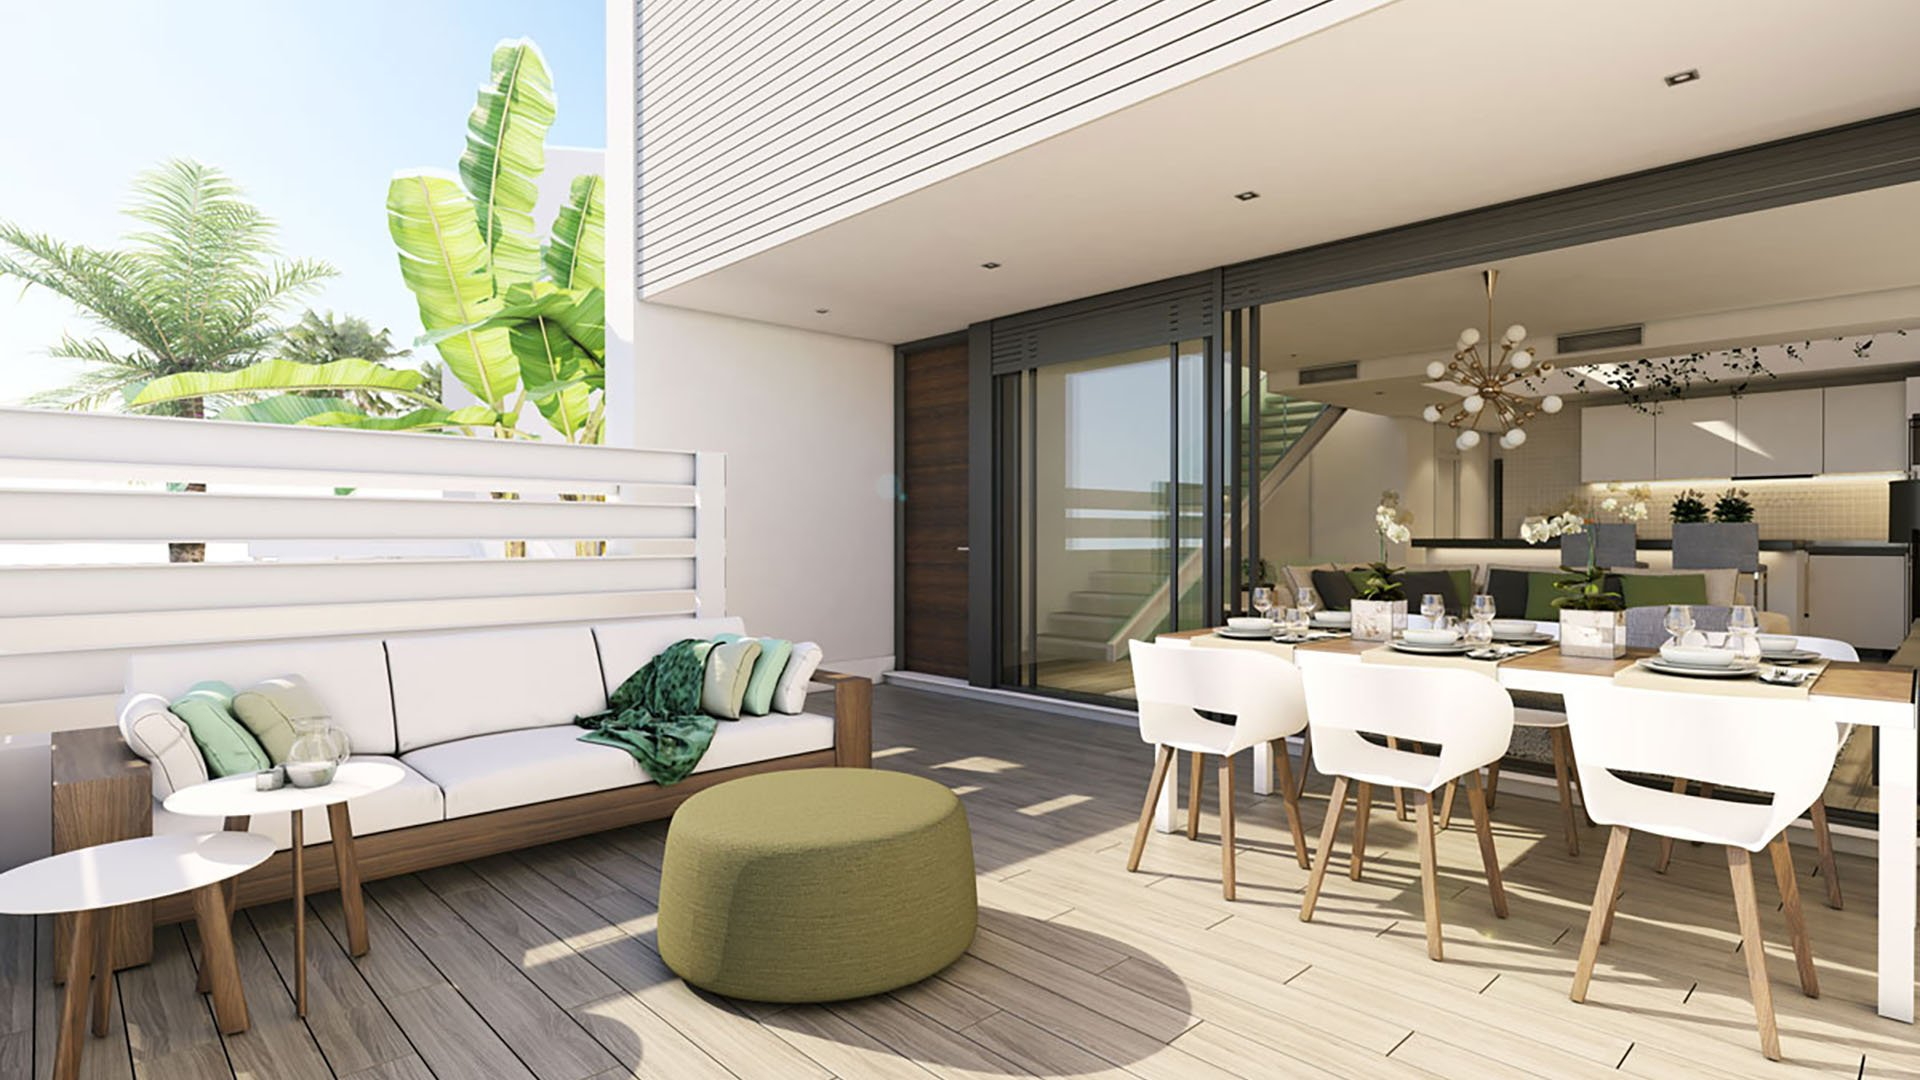 Le Mirage: Modern townhouses and apartments on the New Golden Mile